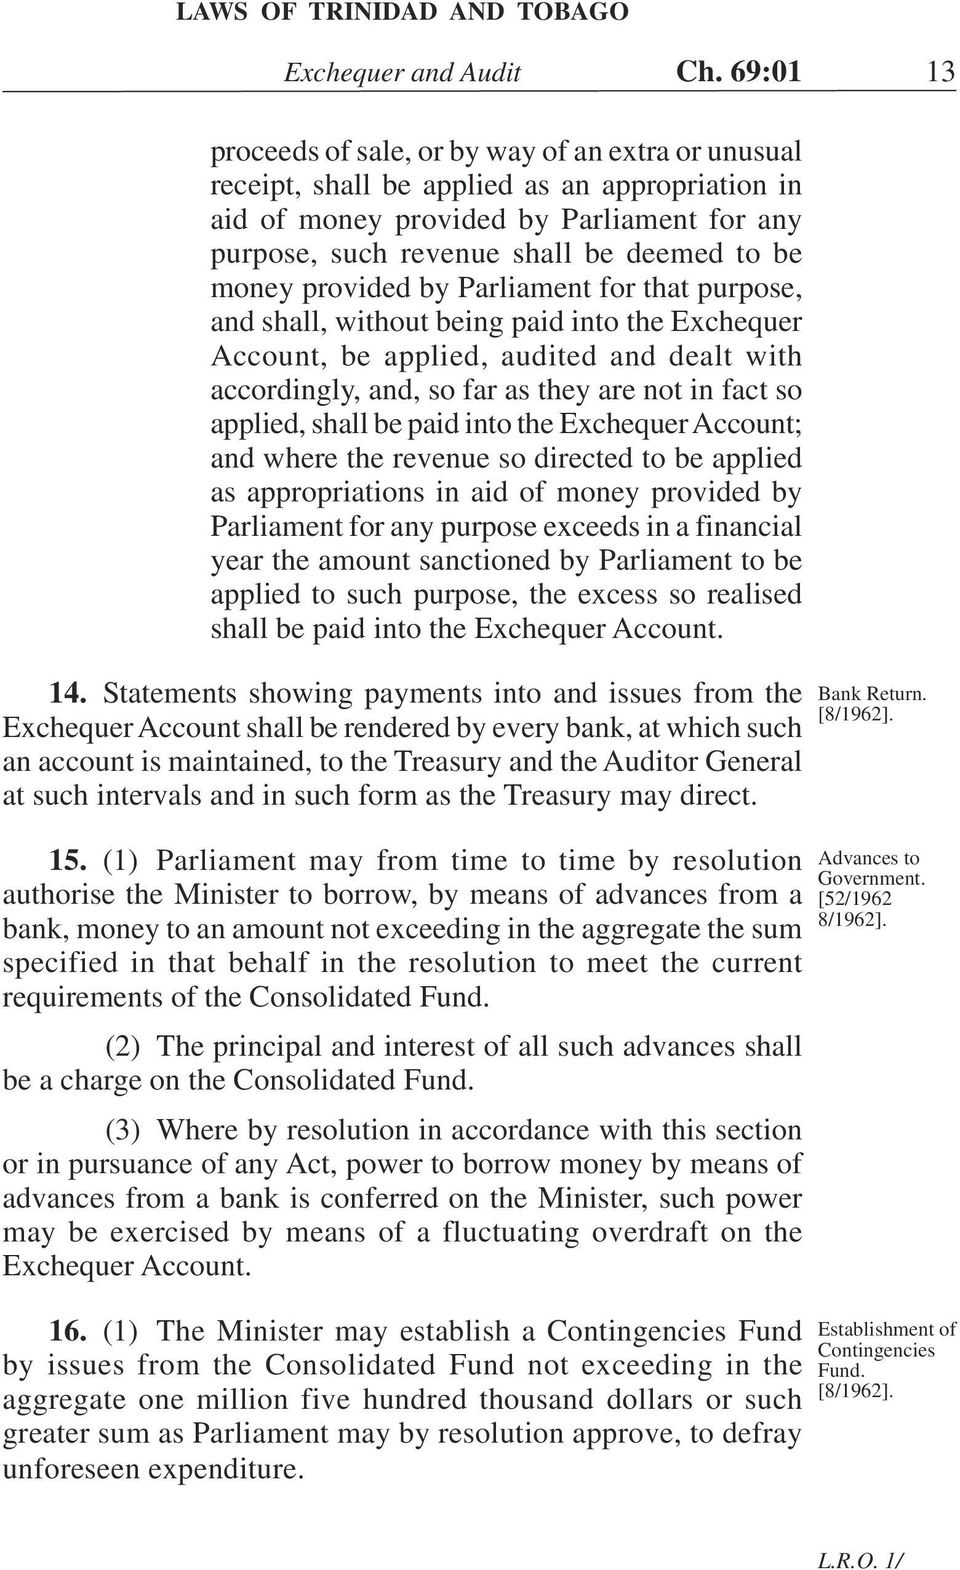 money provided by Parliament for that purpose, and shall, without being paid into the Exchequer Account, be applied, audited and dealt with accordingly, and, so far as they are not in fact so